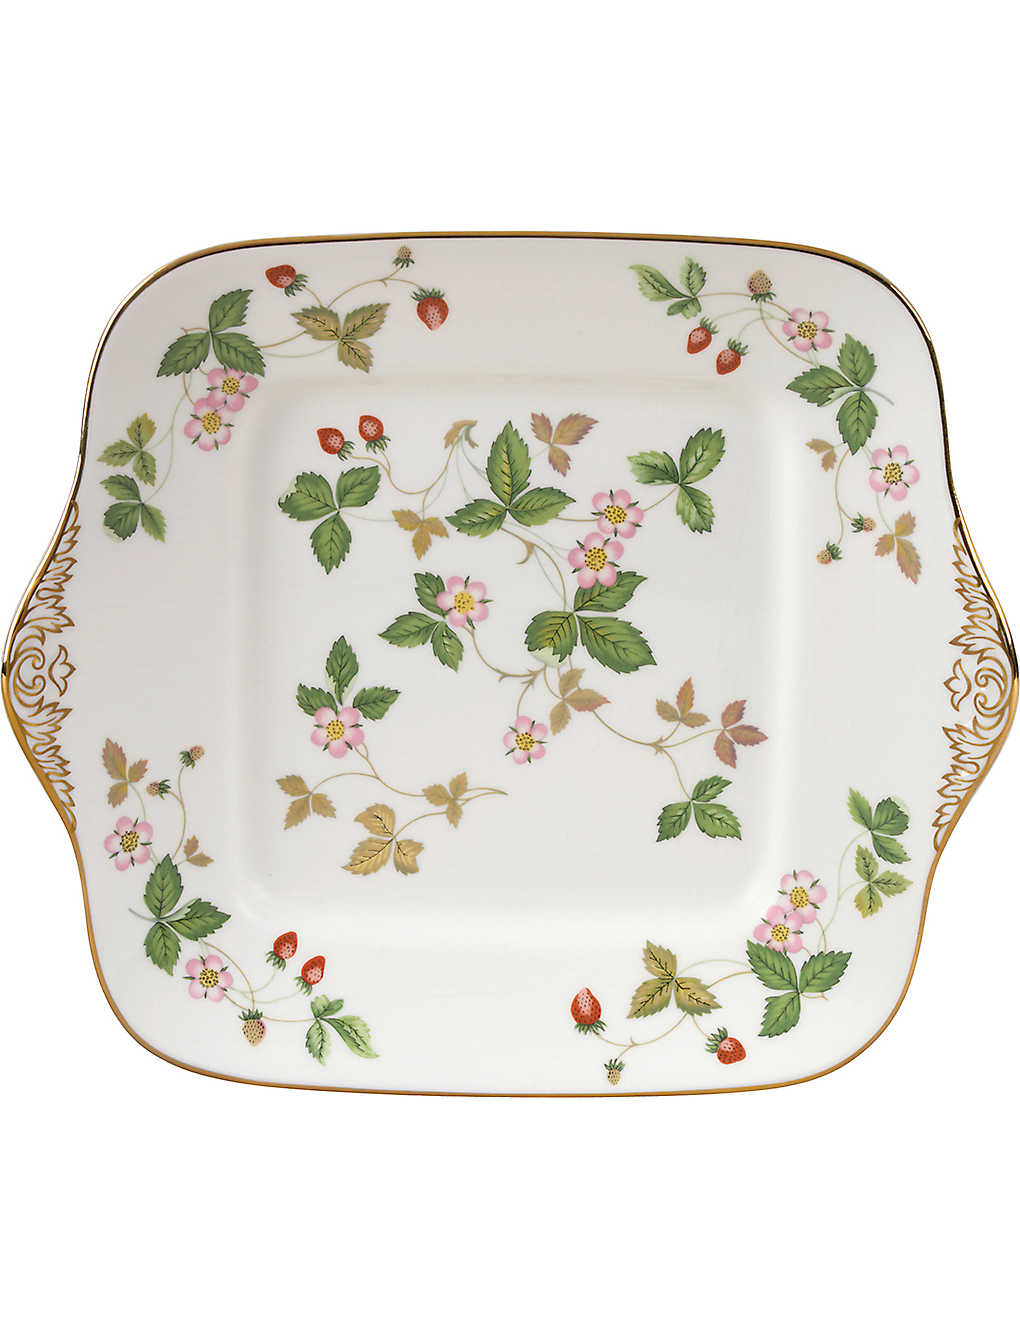 WEDGWOOD: Wild strawberry bread and butter plate